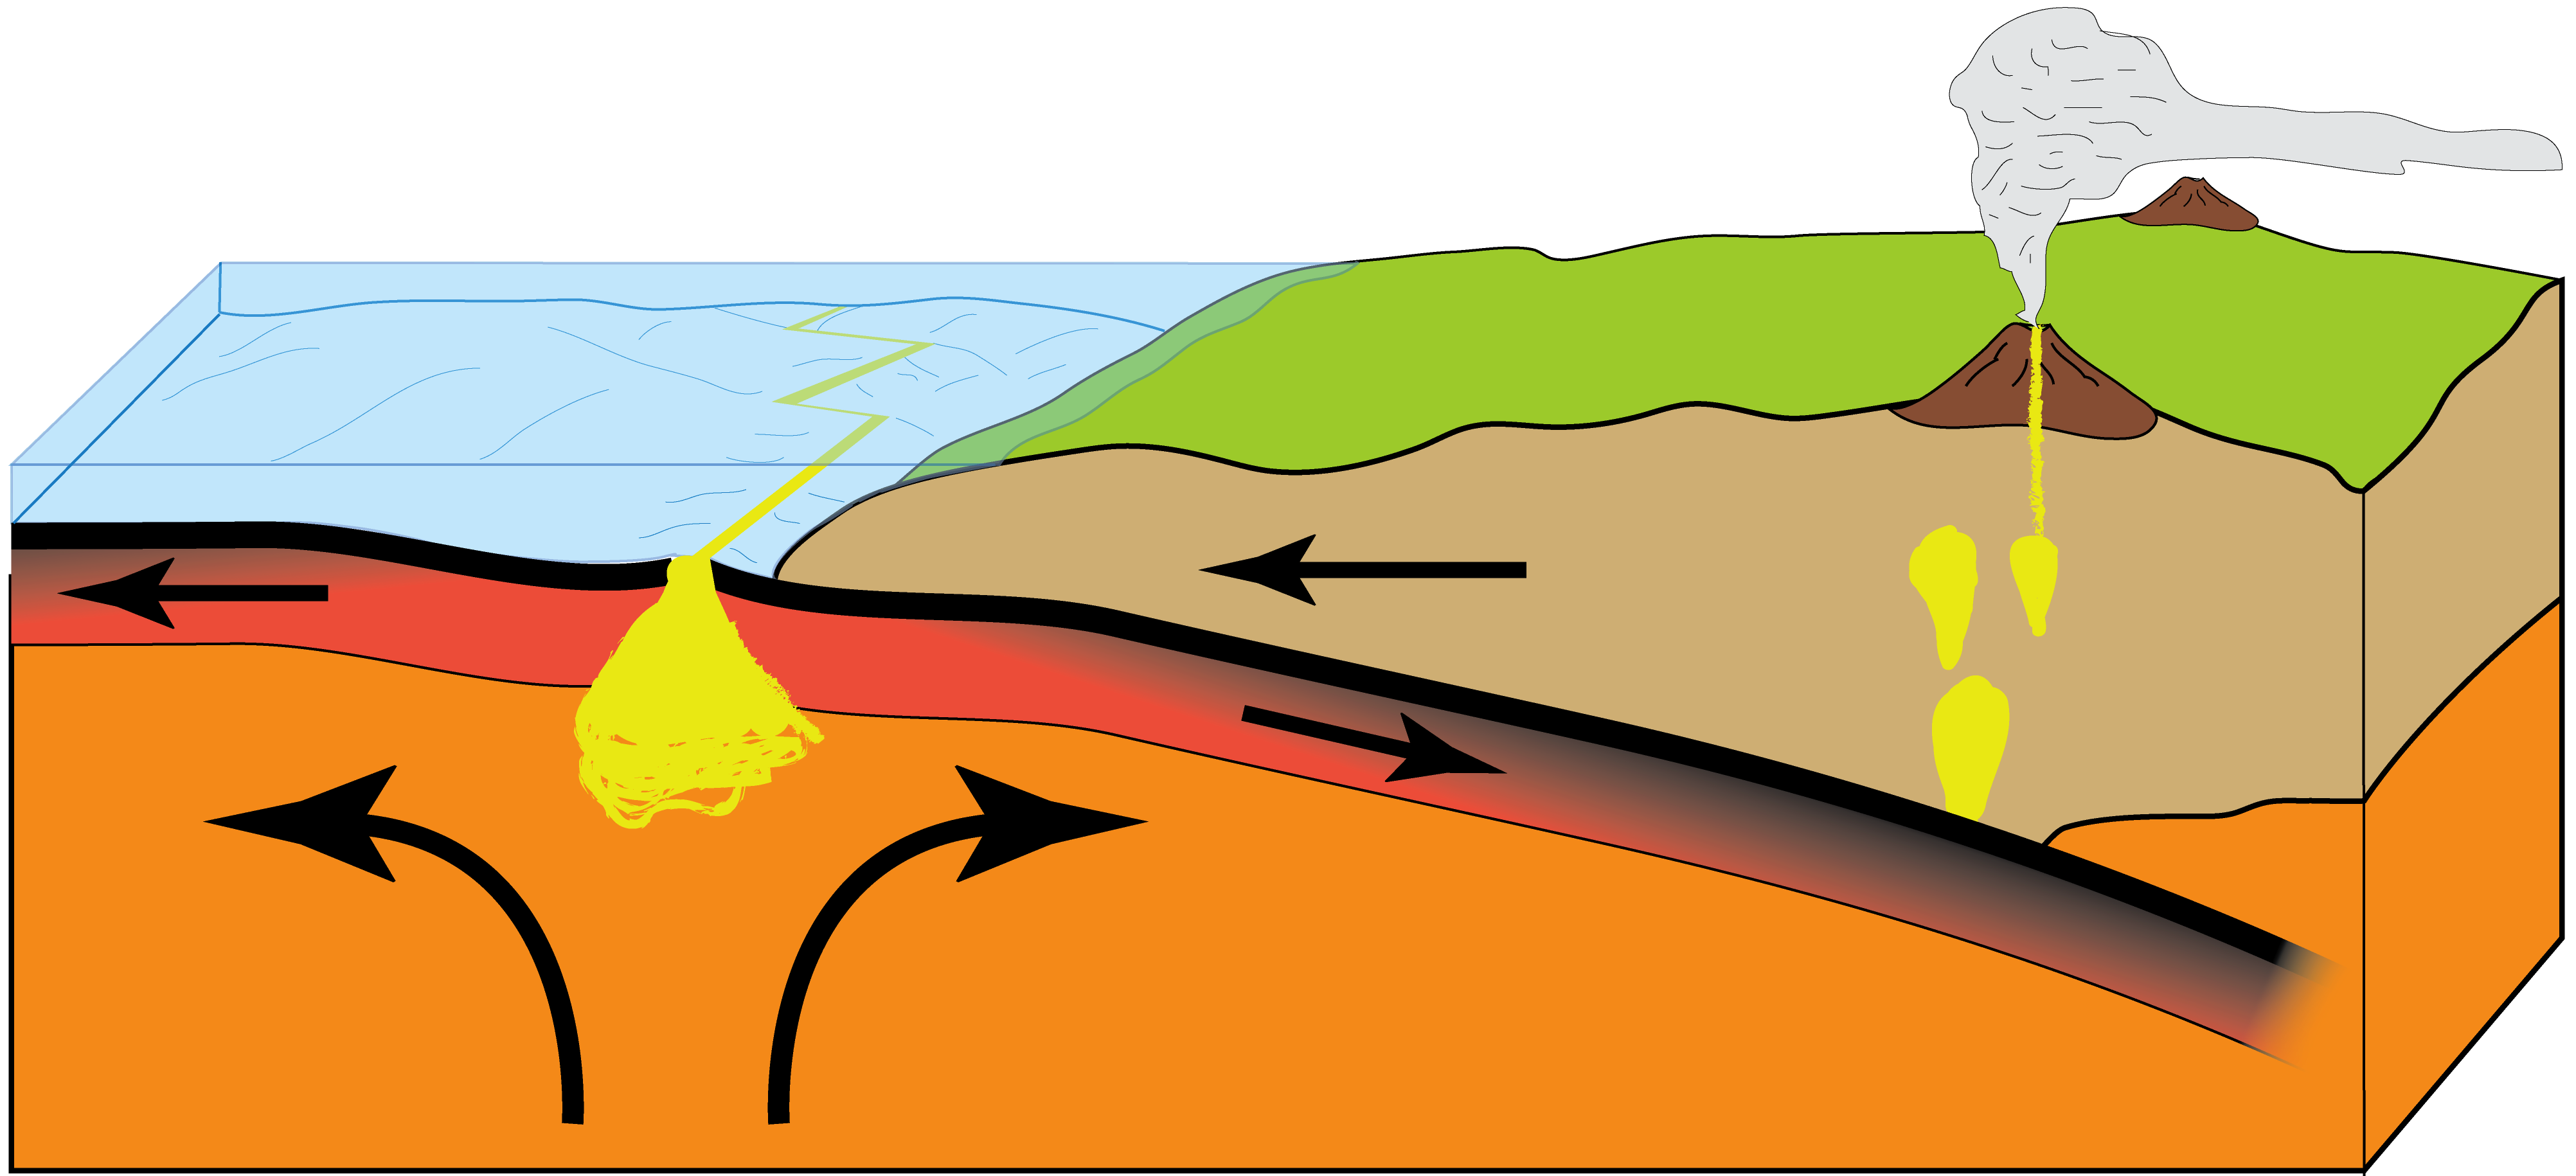 Diagram of plate subduction